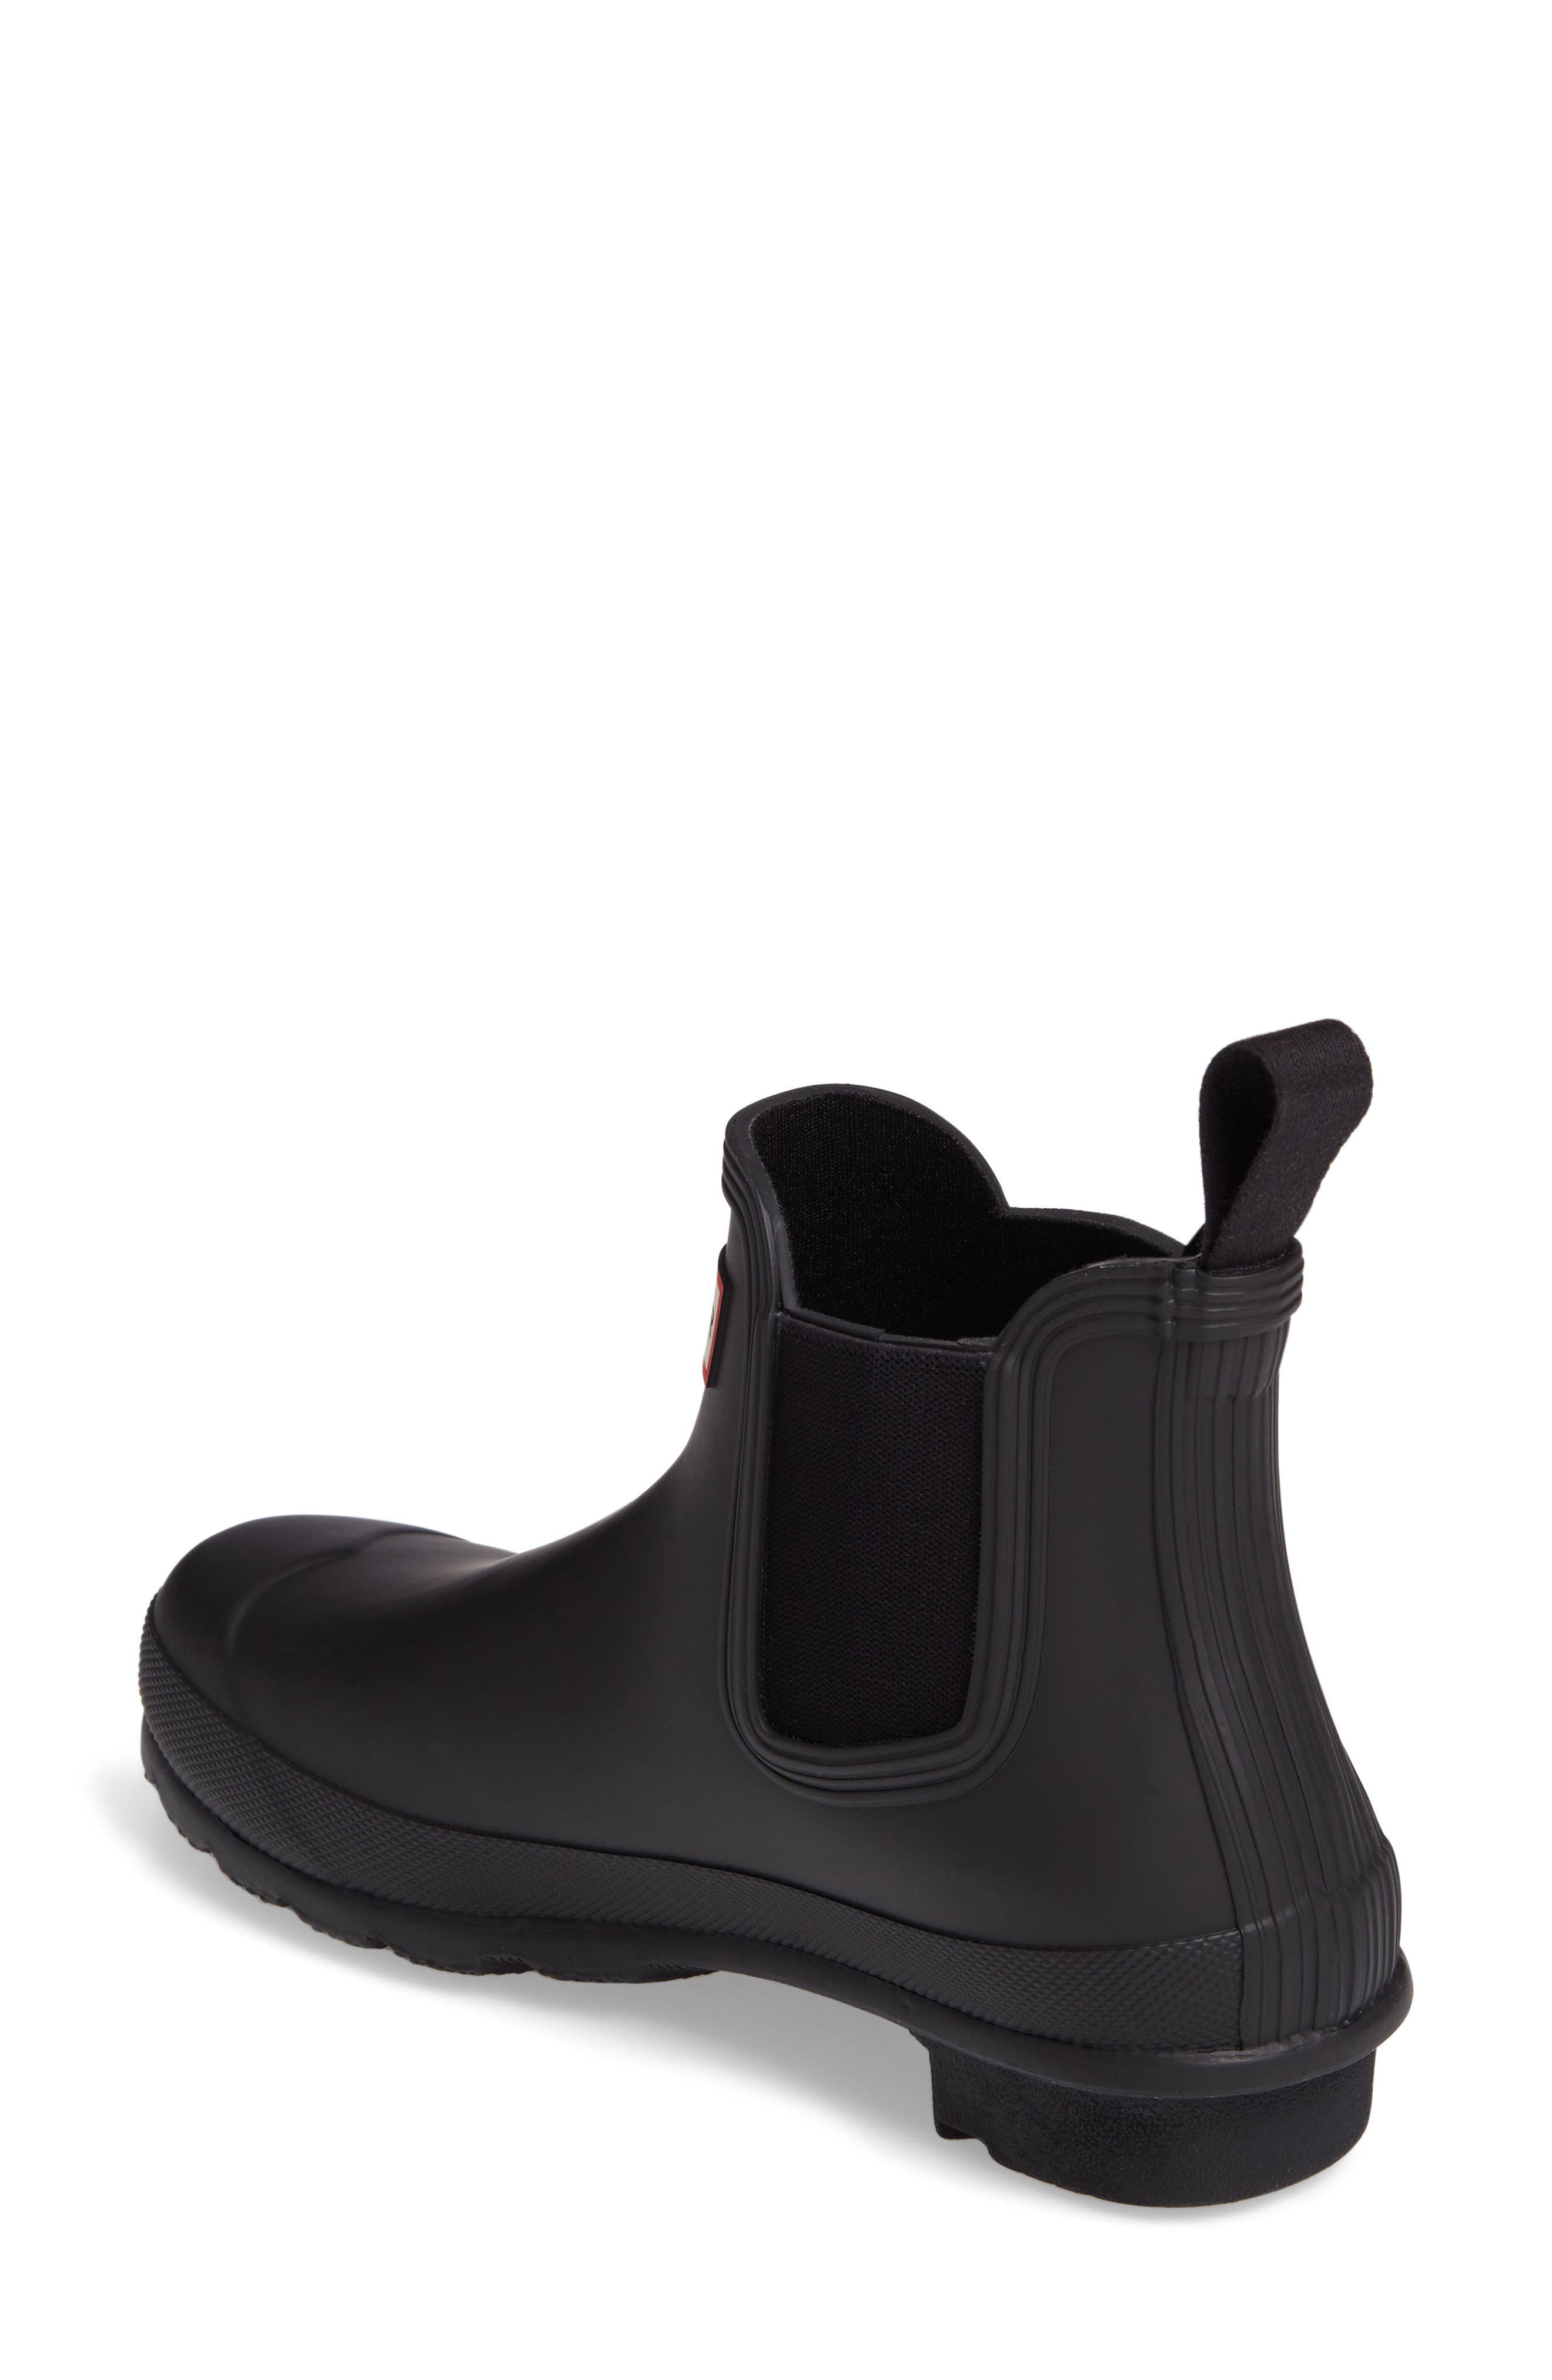 Original Waterproof Chelsea Rain Boot,                             Alternate thumbnail 2, color,                             BLACK MATTE